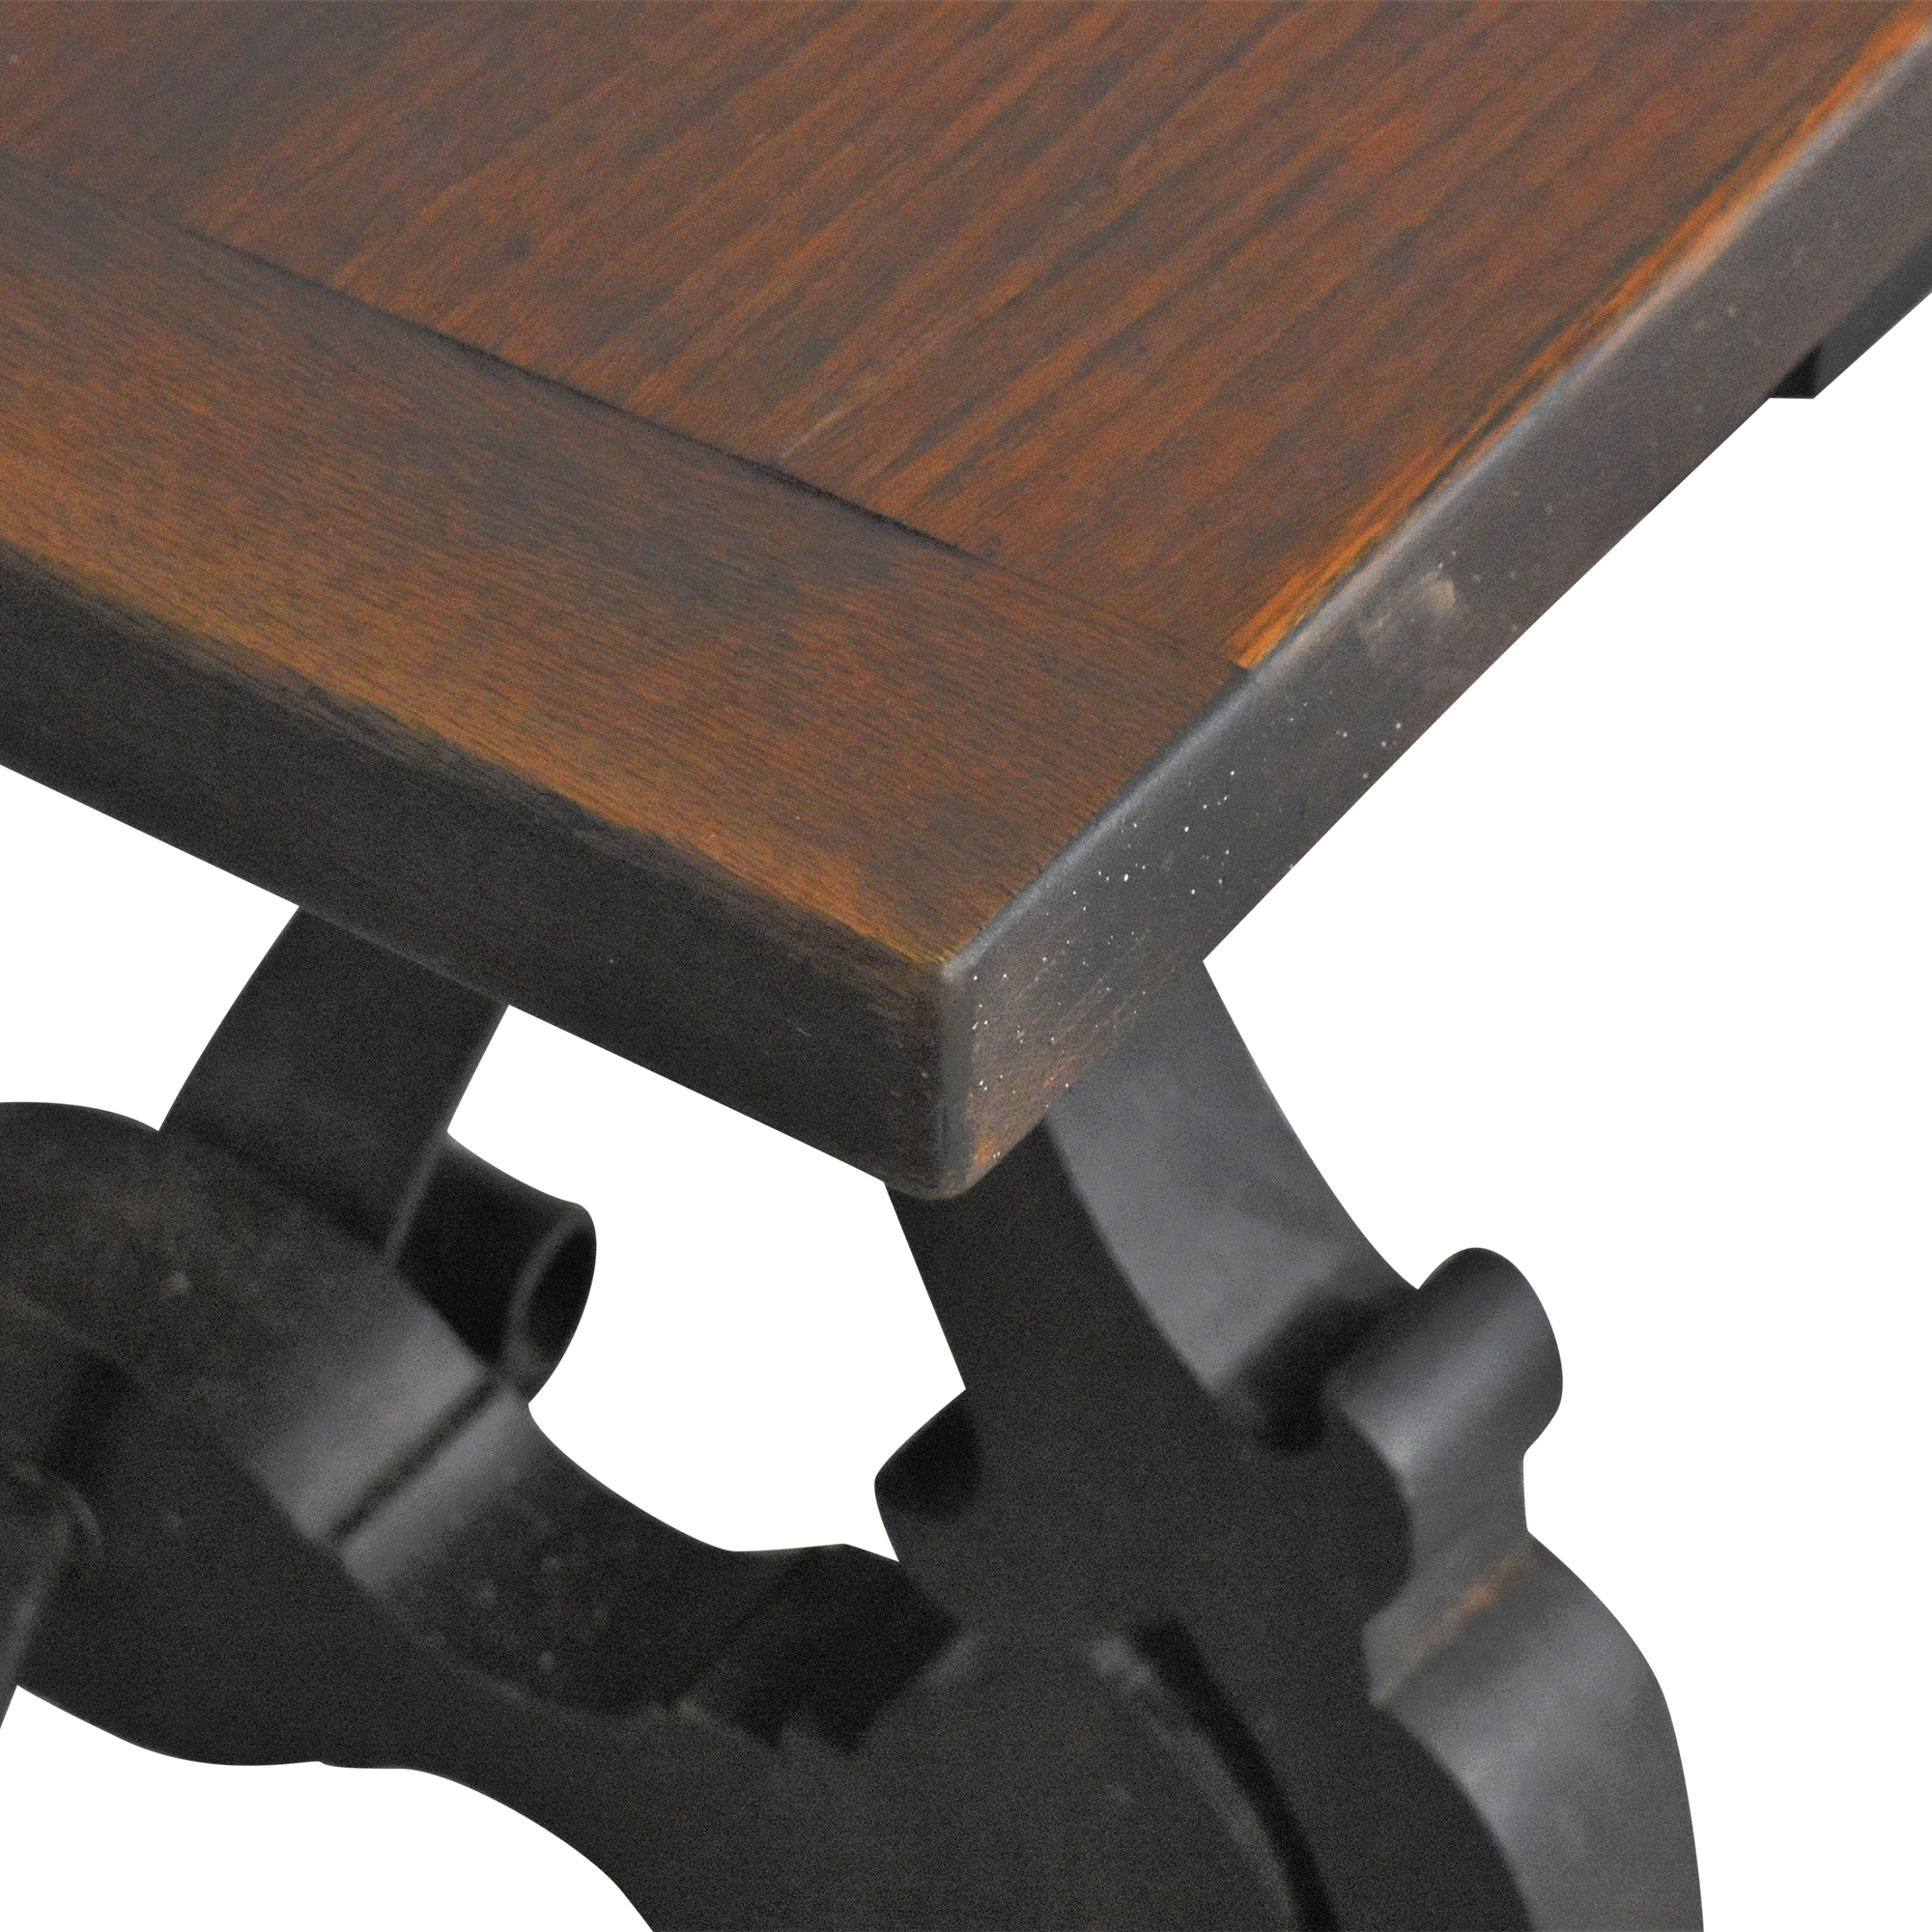 buy ABC Carpet & Home ABC Carpet & Home Dining Table online